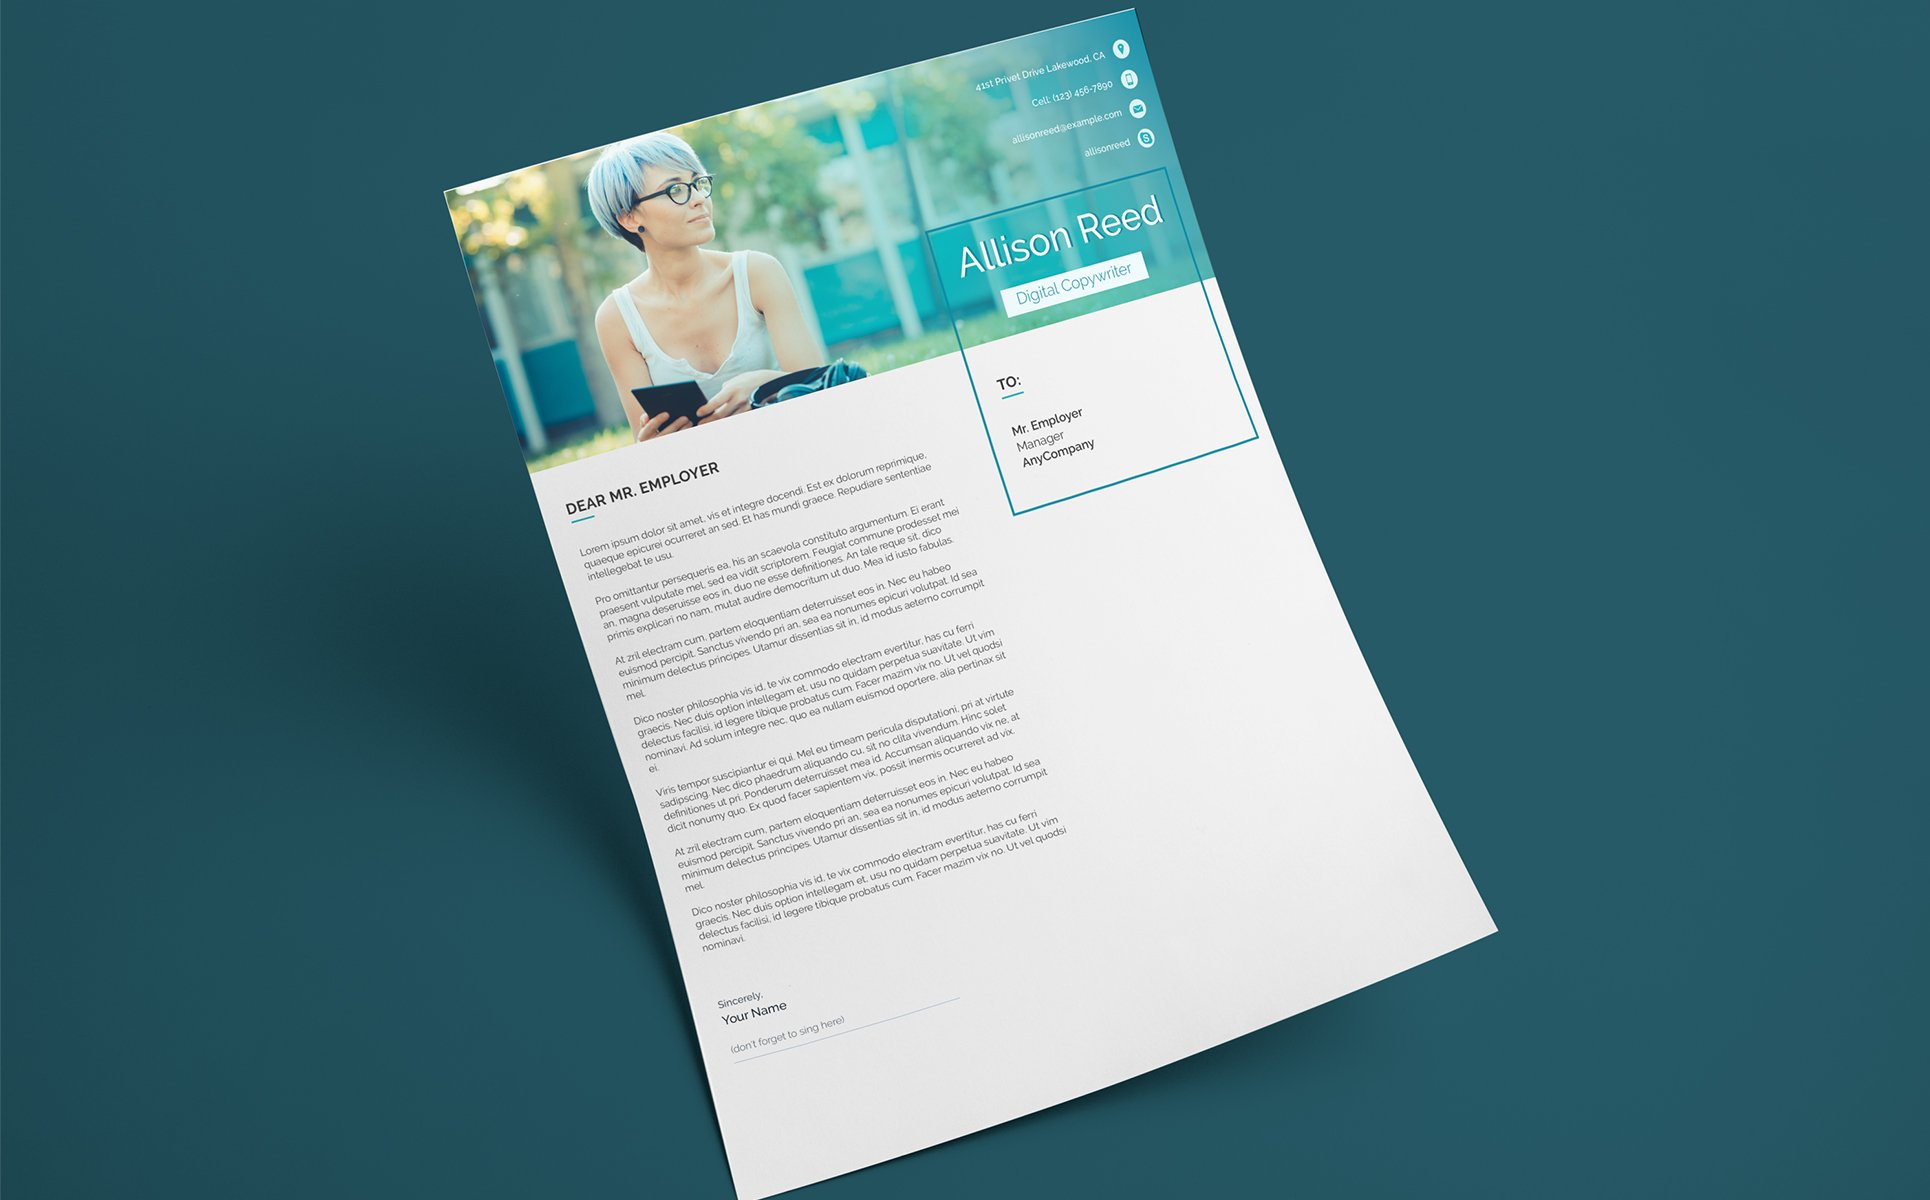 Allison reed copywriter resume template 65251 allison reed copywriter resume template big screenshot yelopaper Image collections